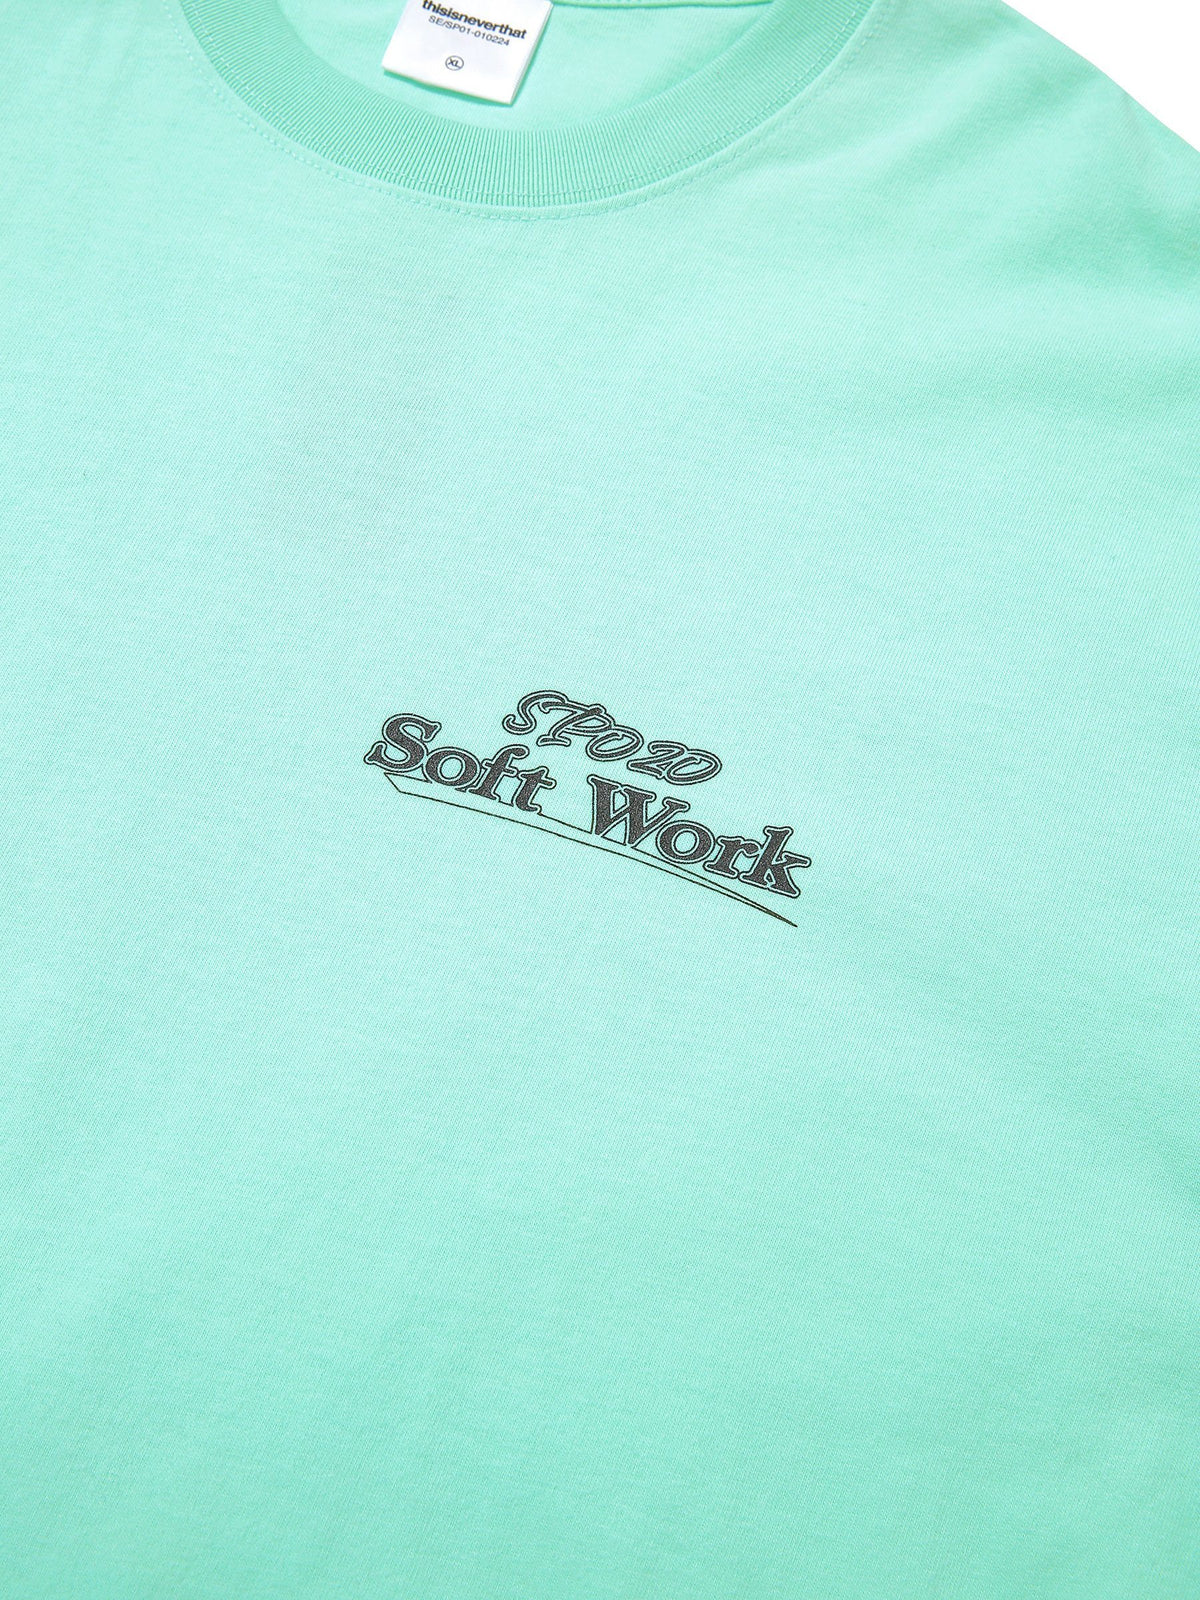 SOFT WORK Tee - thisisneverthat